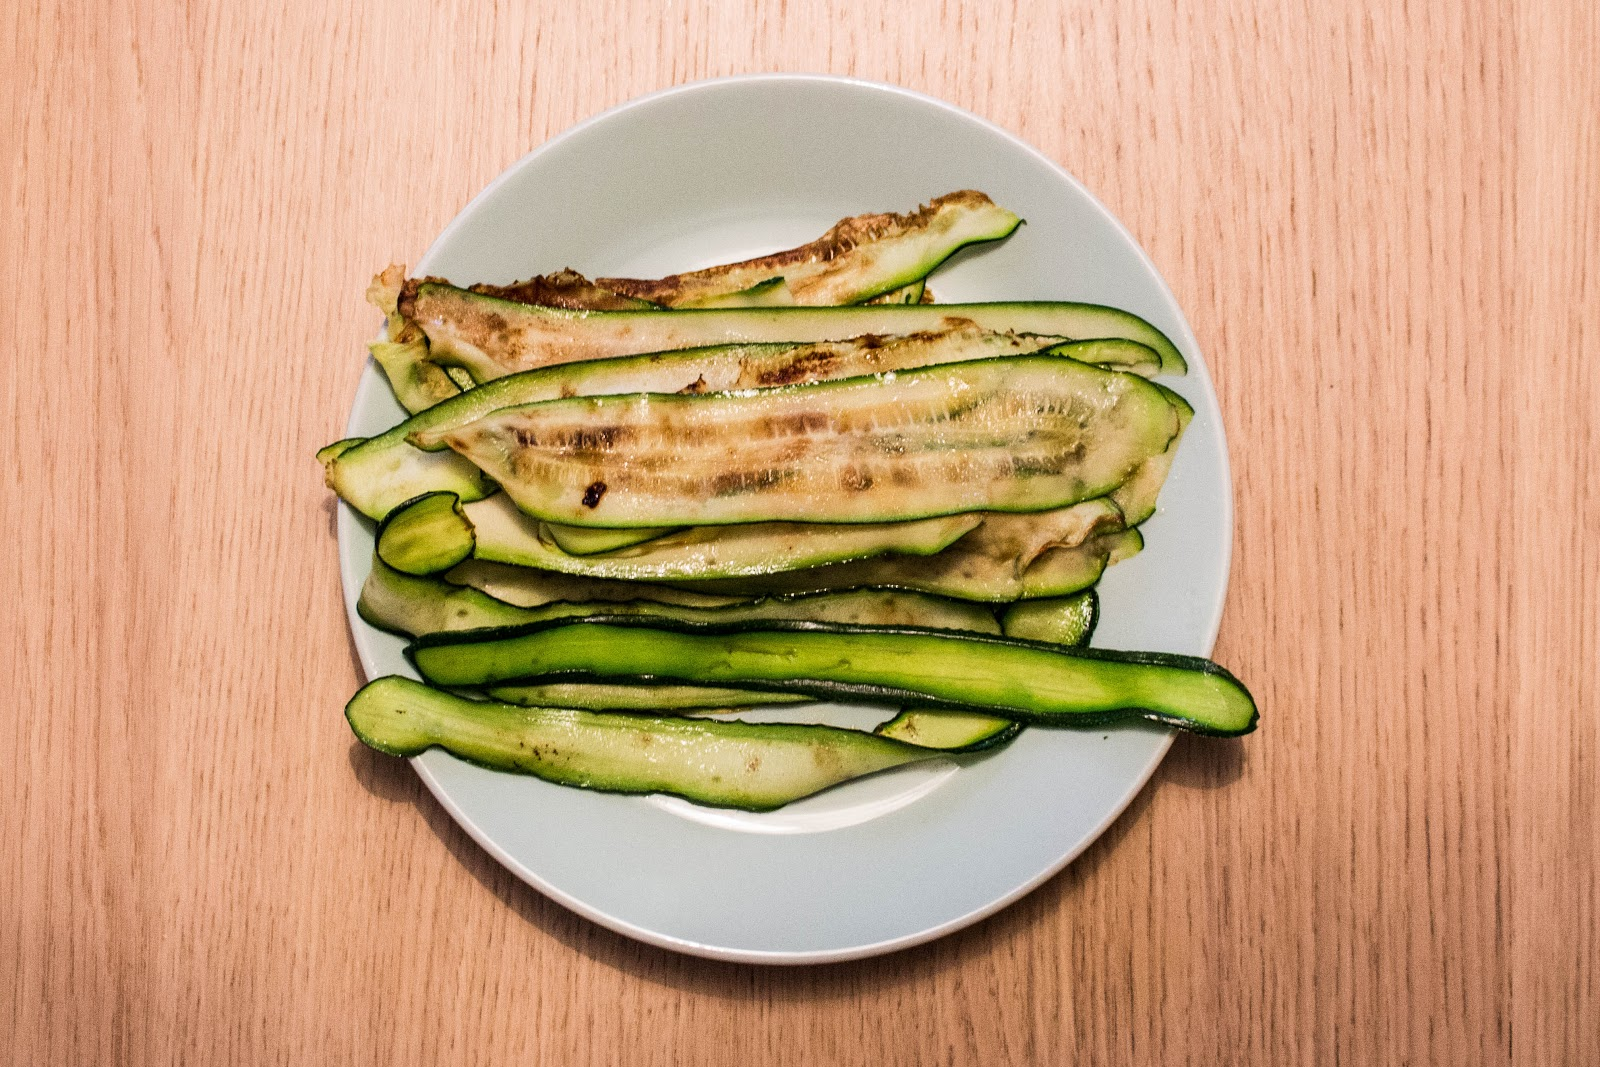 Cooked zucchini slices | Svelte Salivations